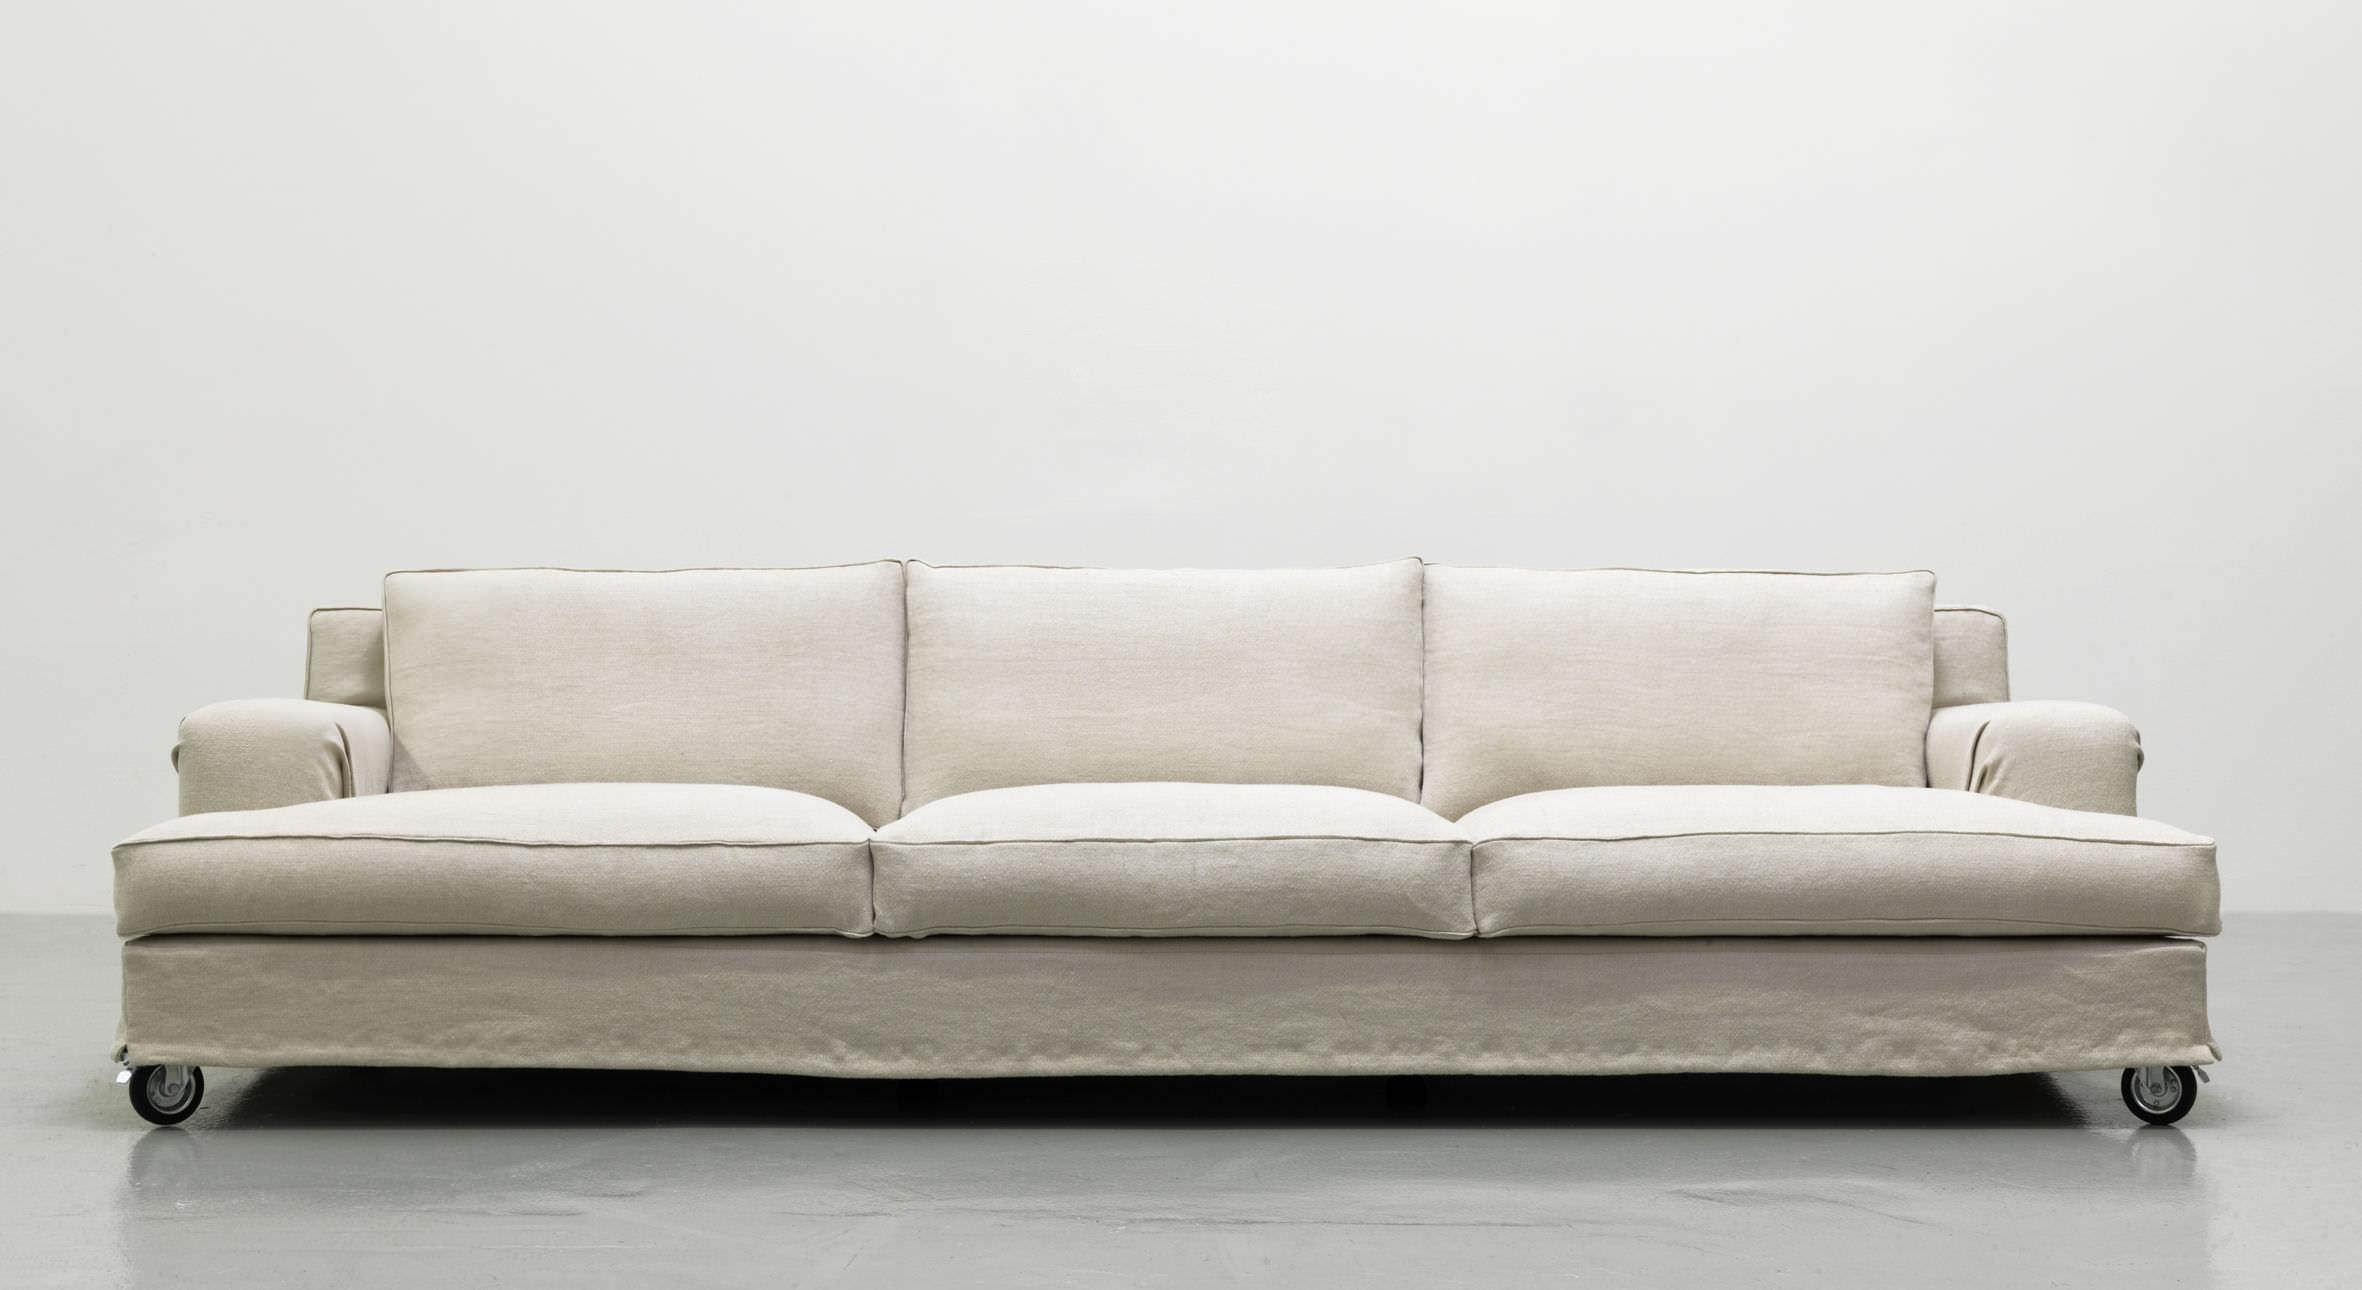 Contemporary Sofa / Fabric / 3 Seater / On Casters – Aberdeen Intended For Casters Sofas (Image 6 of 20)